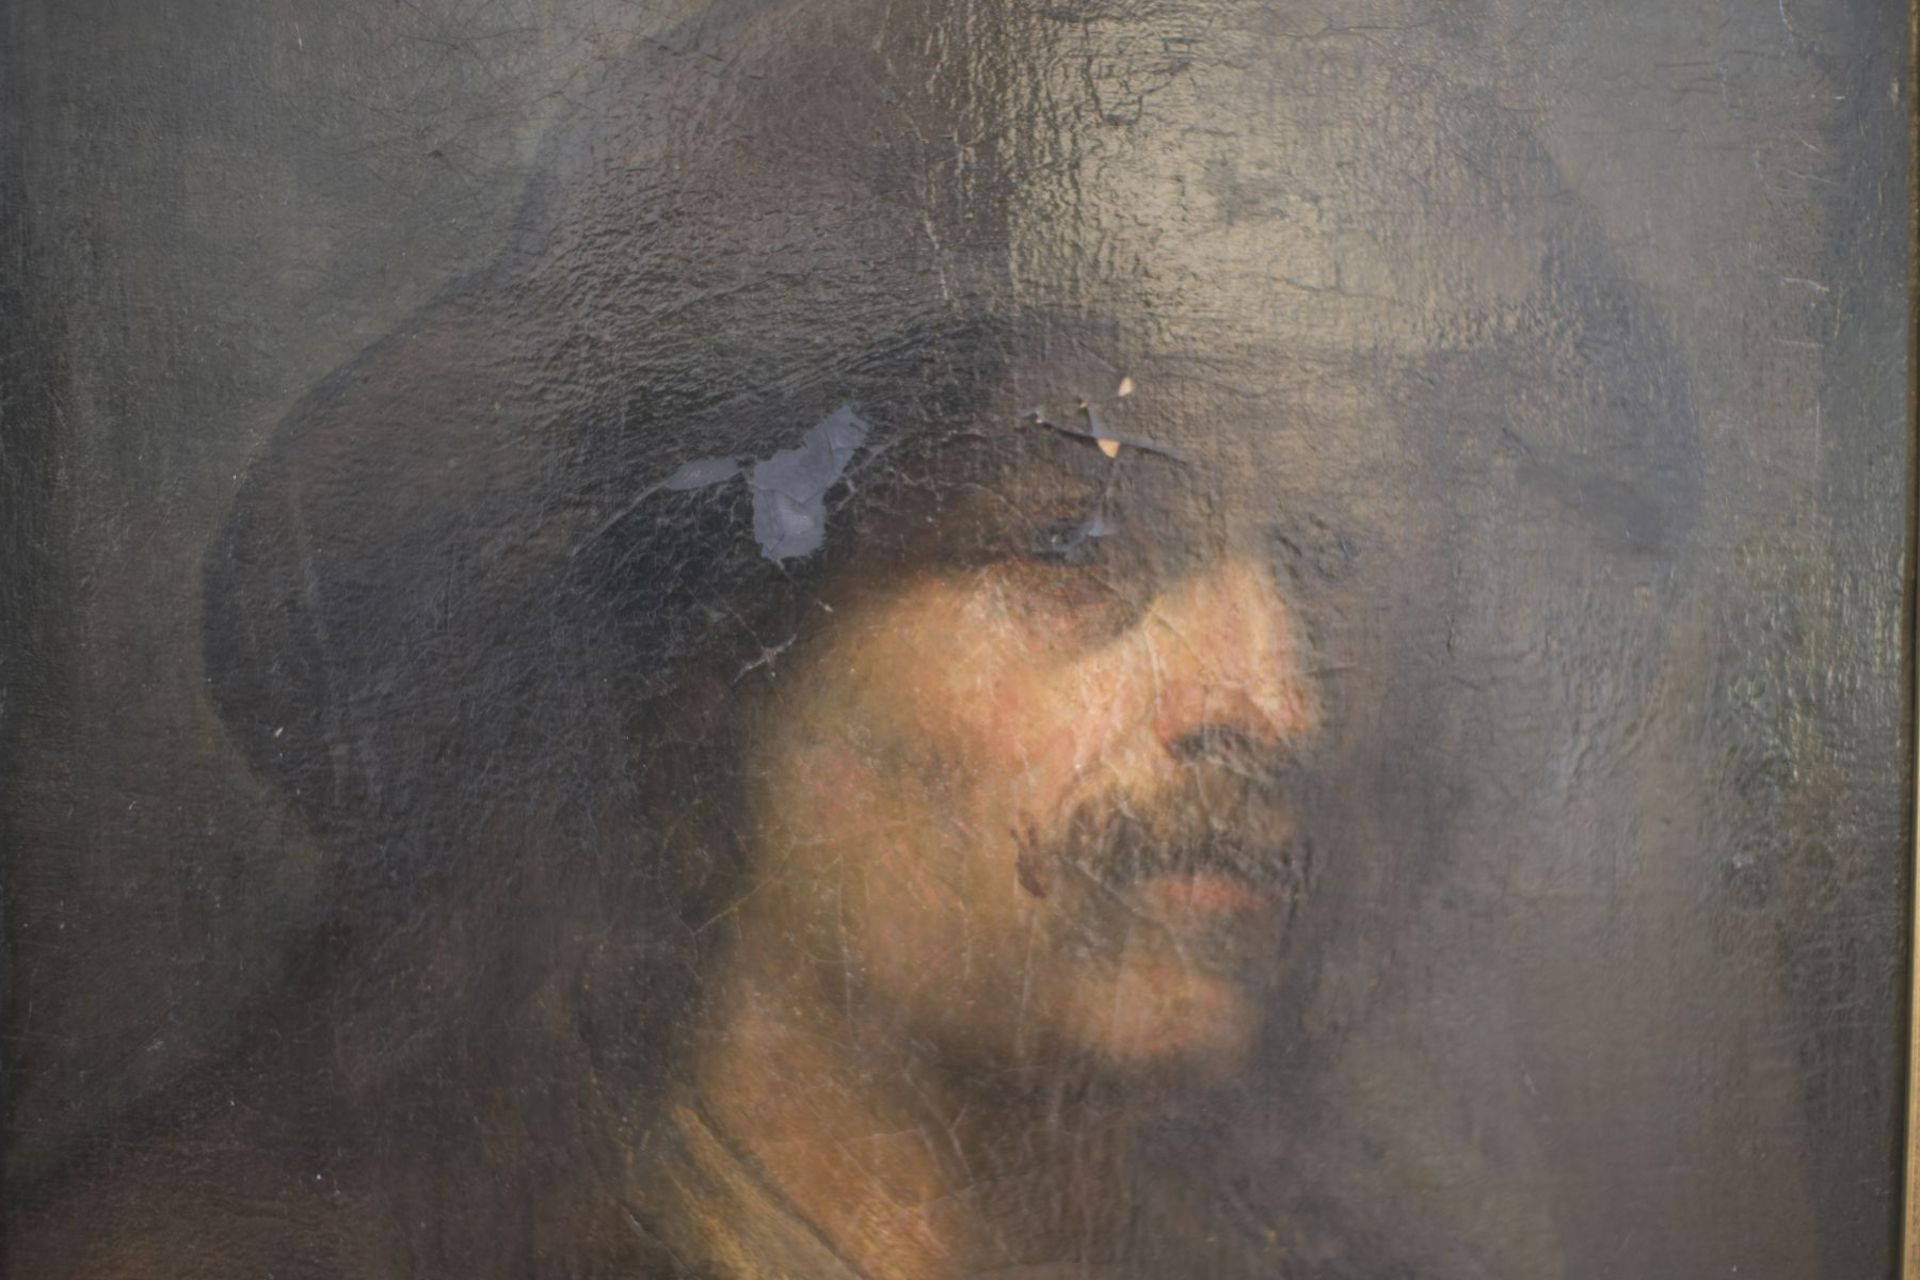 """Attributed to Mihály von Munkácsy (1844-1900) """"Bearded man with floppy hat"""" - Image 2 of 4"""